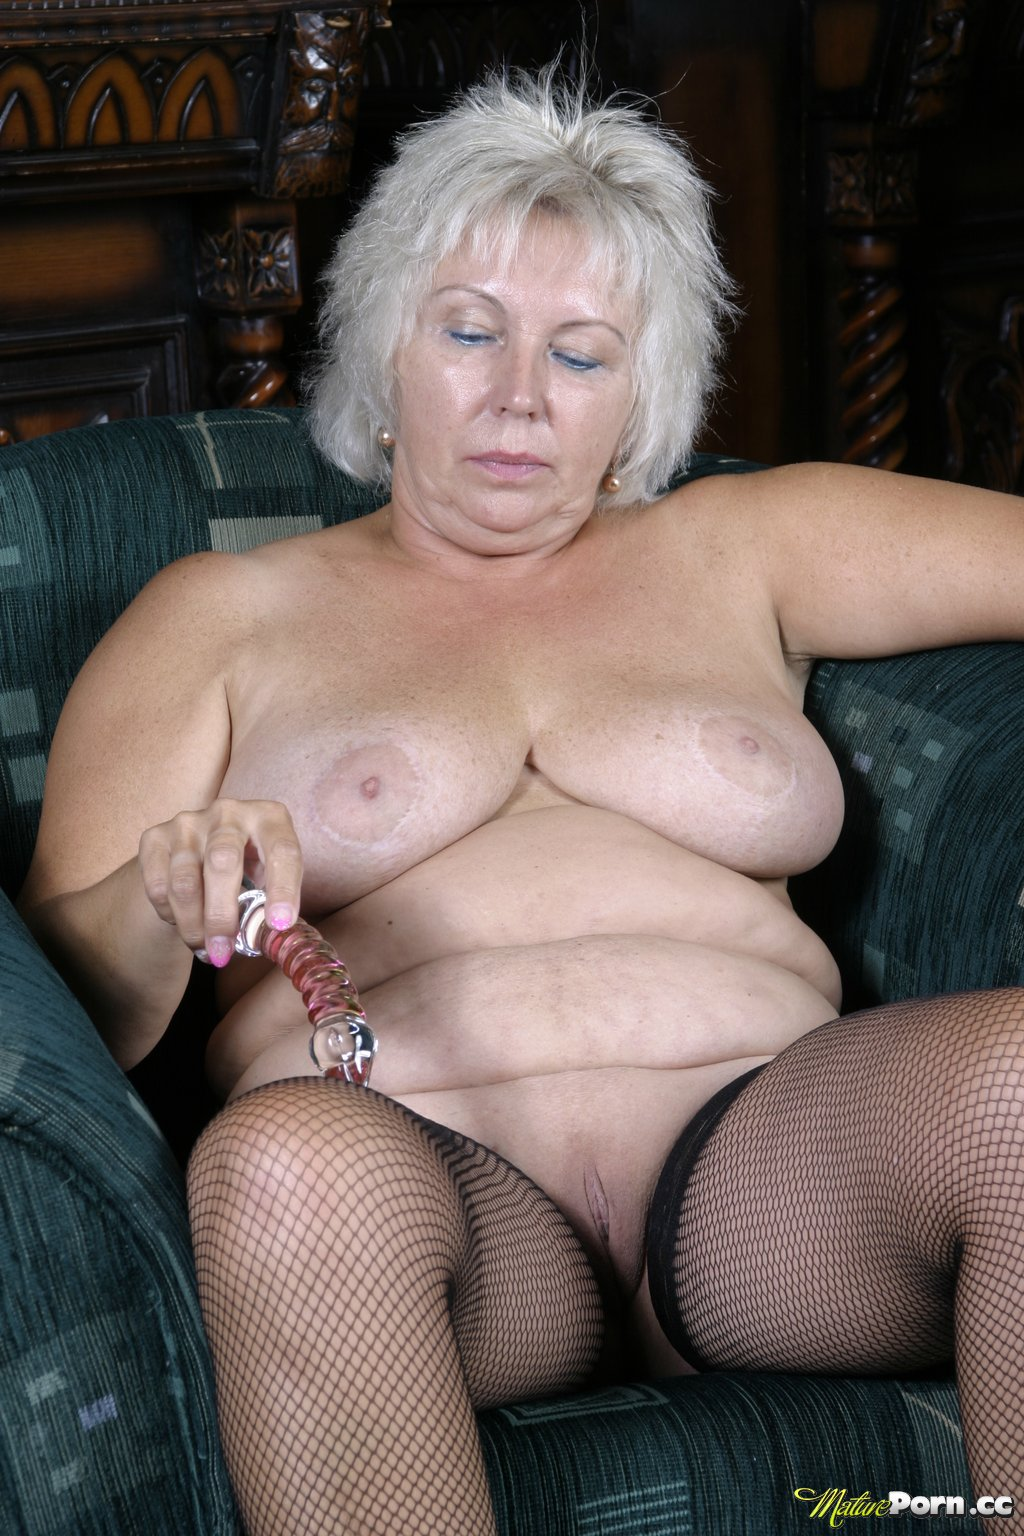 naked chubby blond